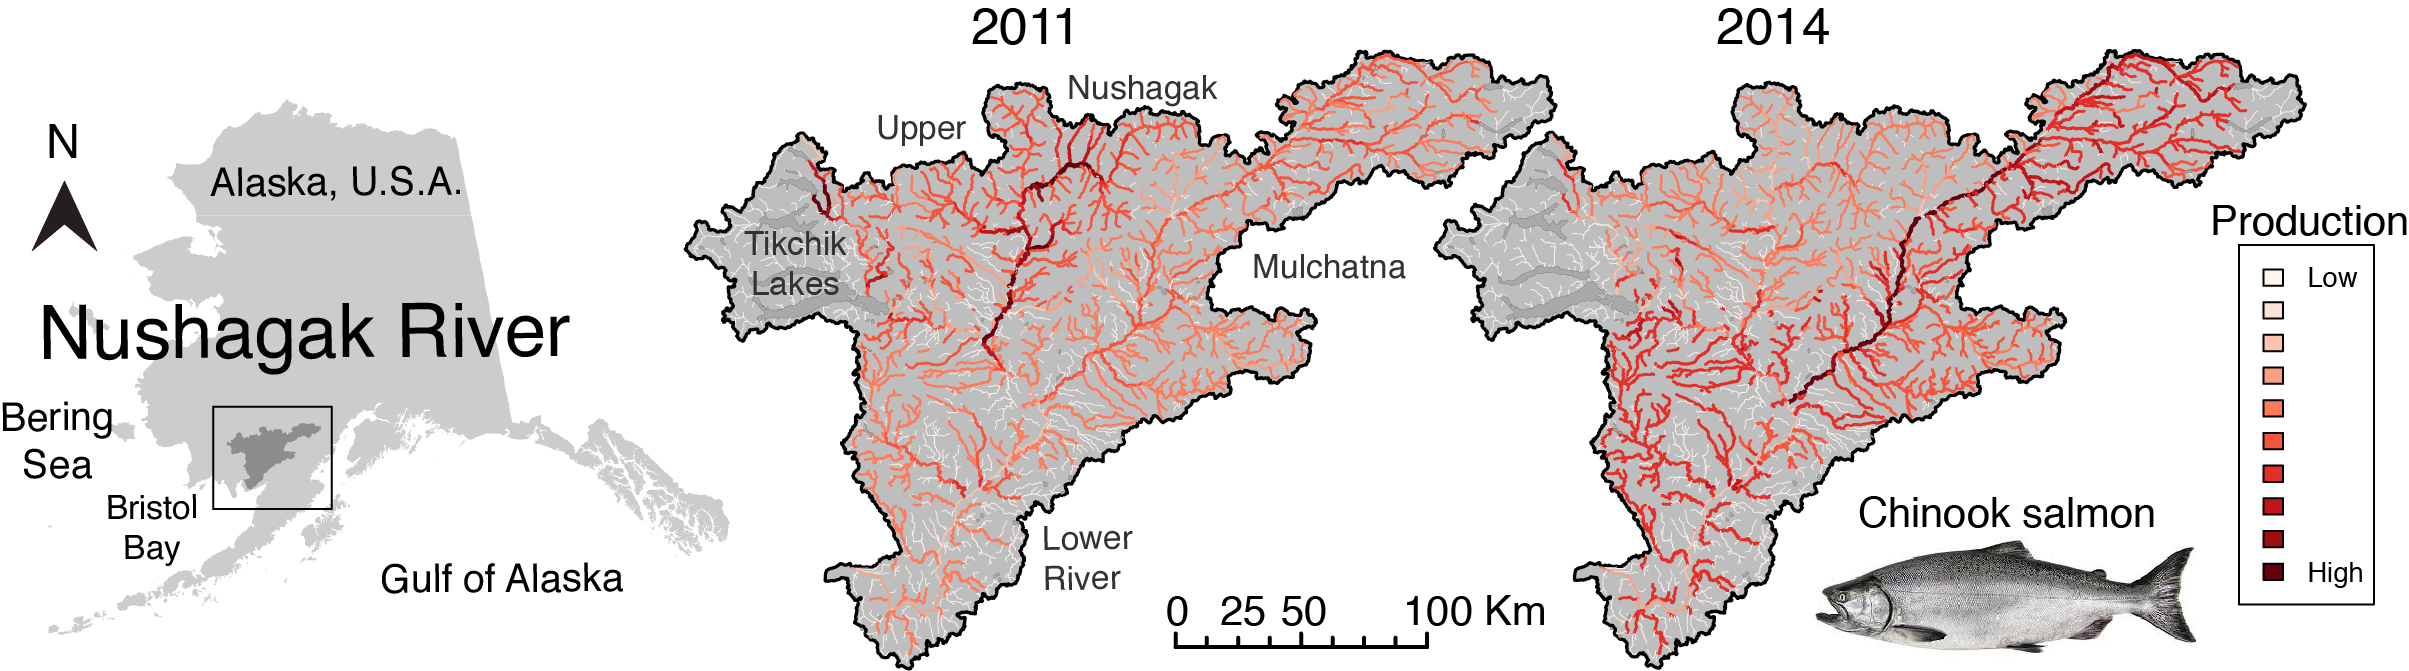 map showing productive areas of the basin year to year